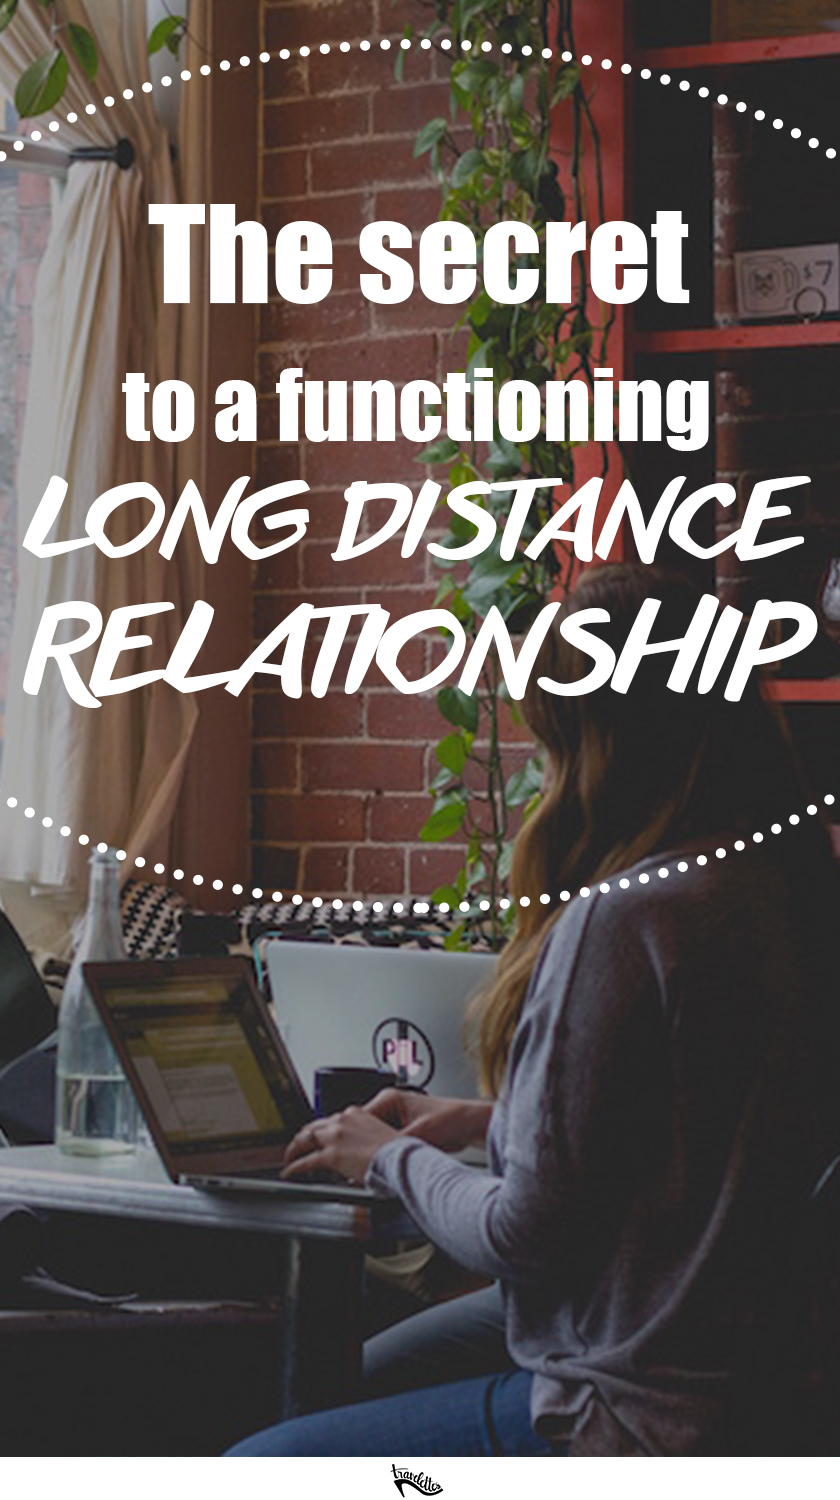 The secret of long distance relationships